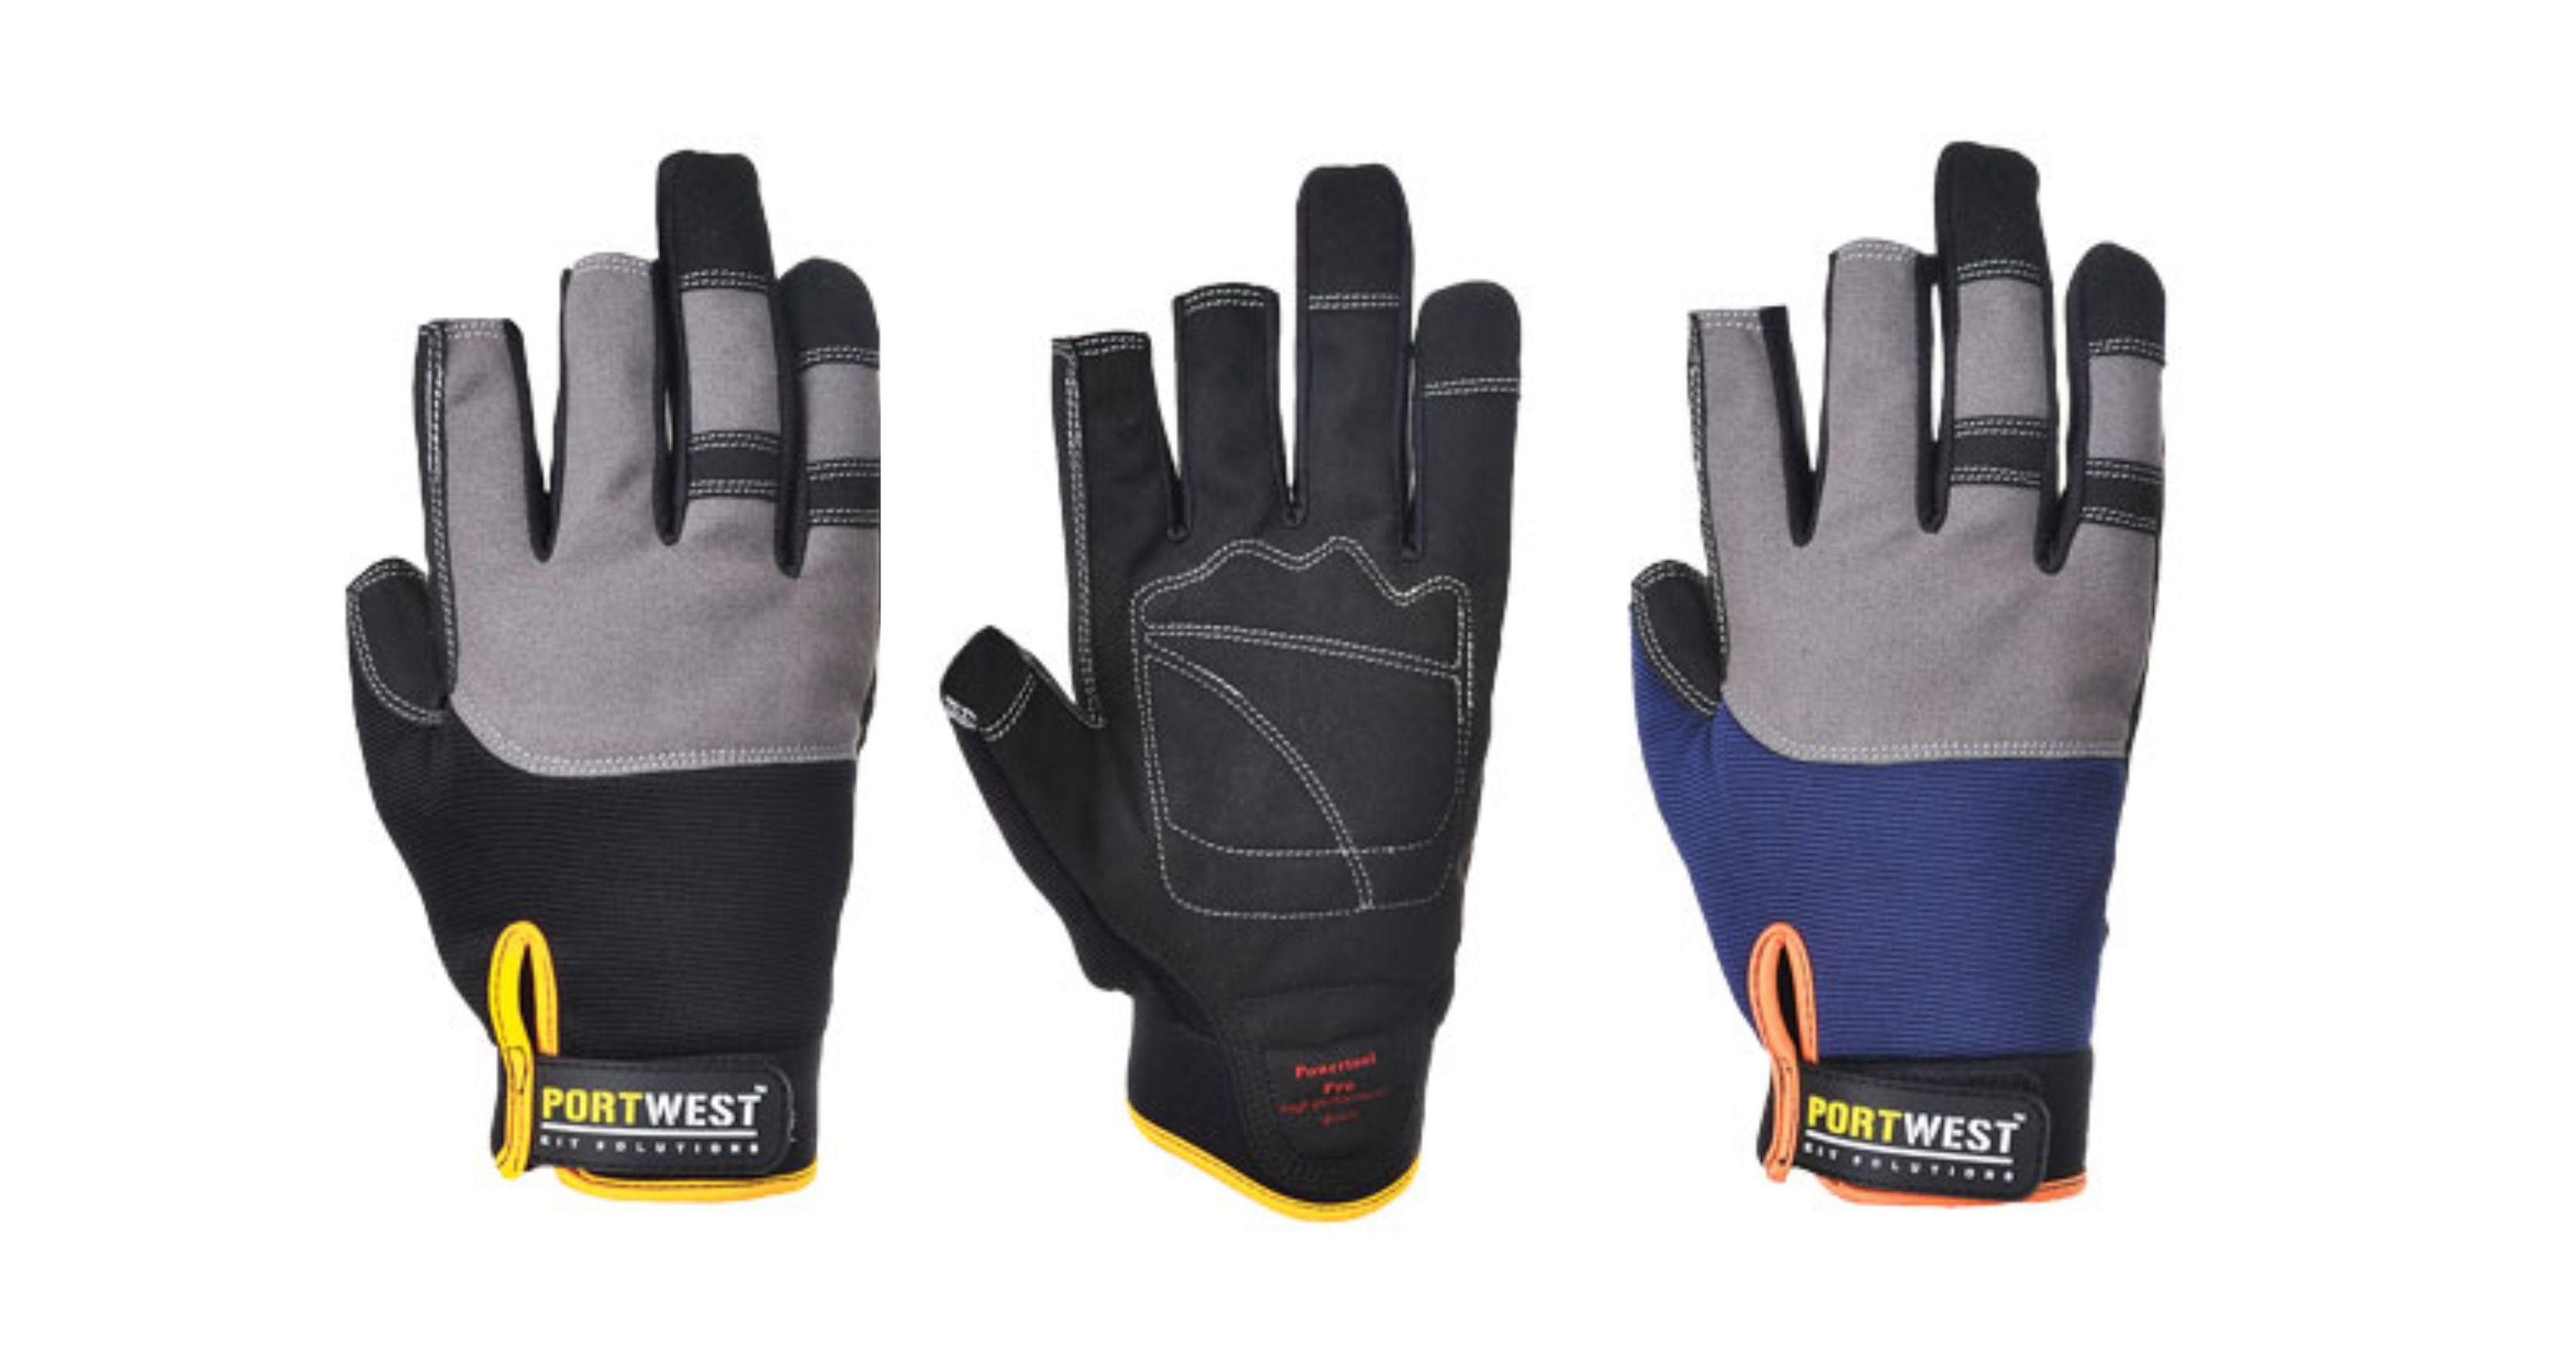 A740 Powertool Pro-High Performance glove